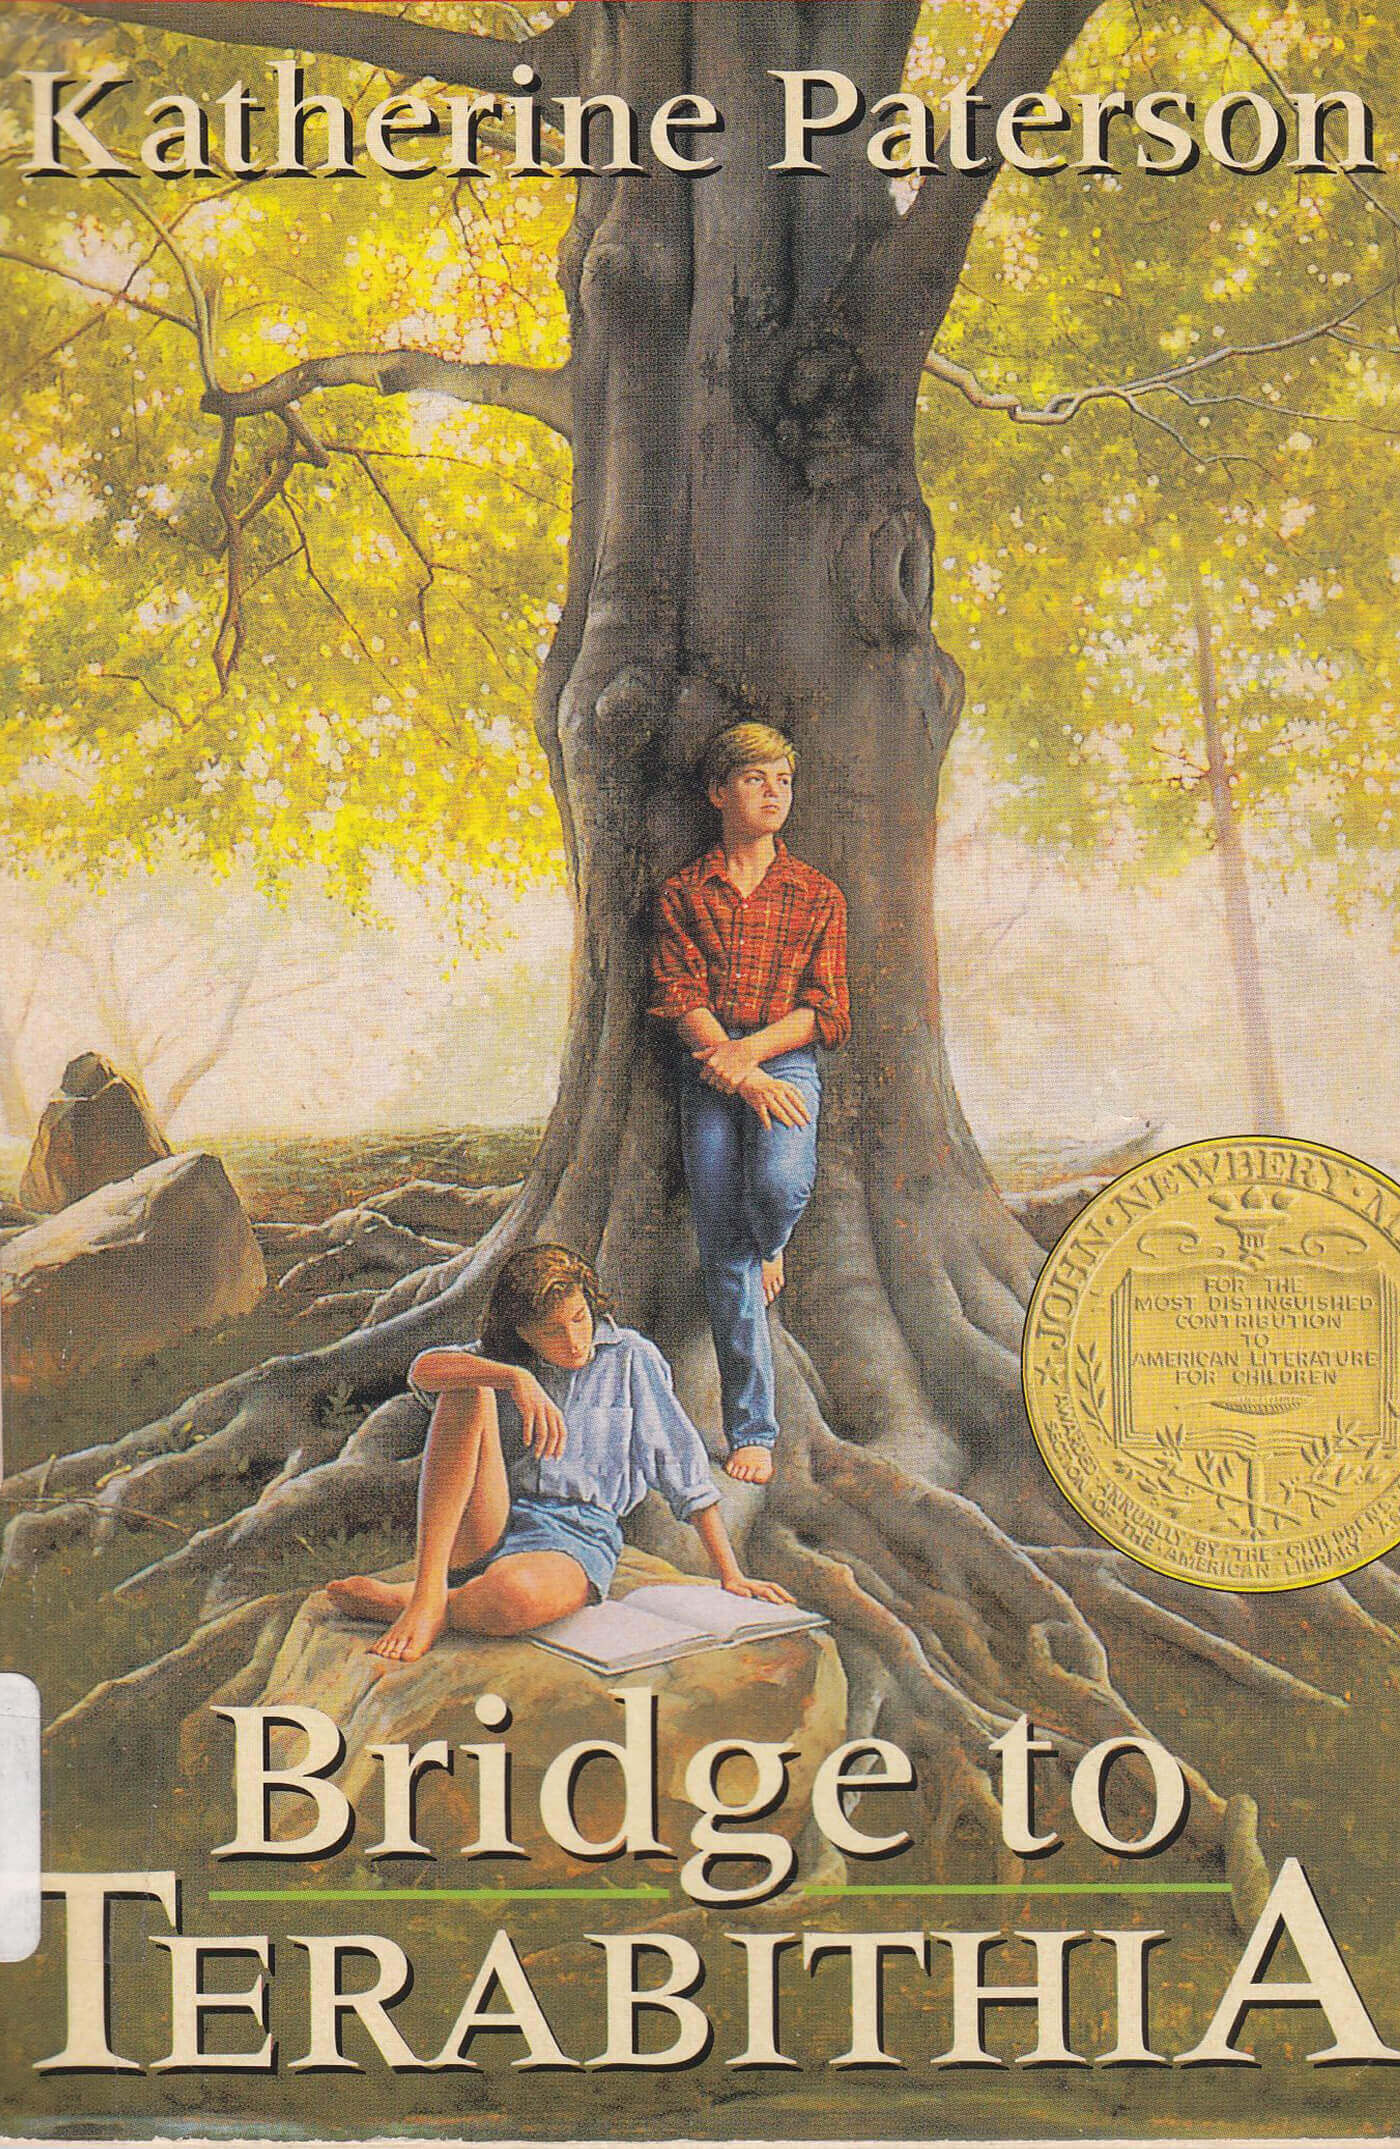 Bridge to Terabithia Novel by Katherine Paterson